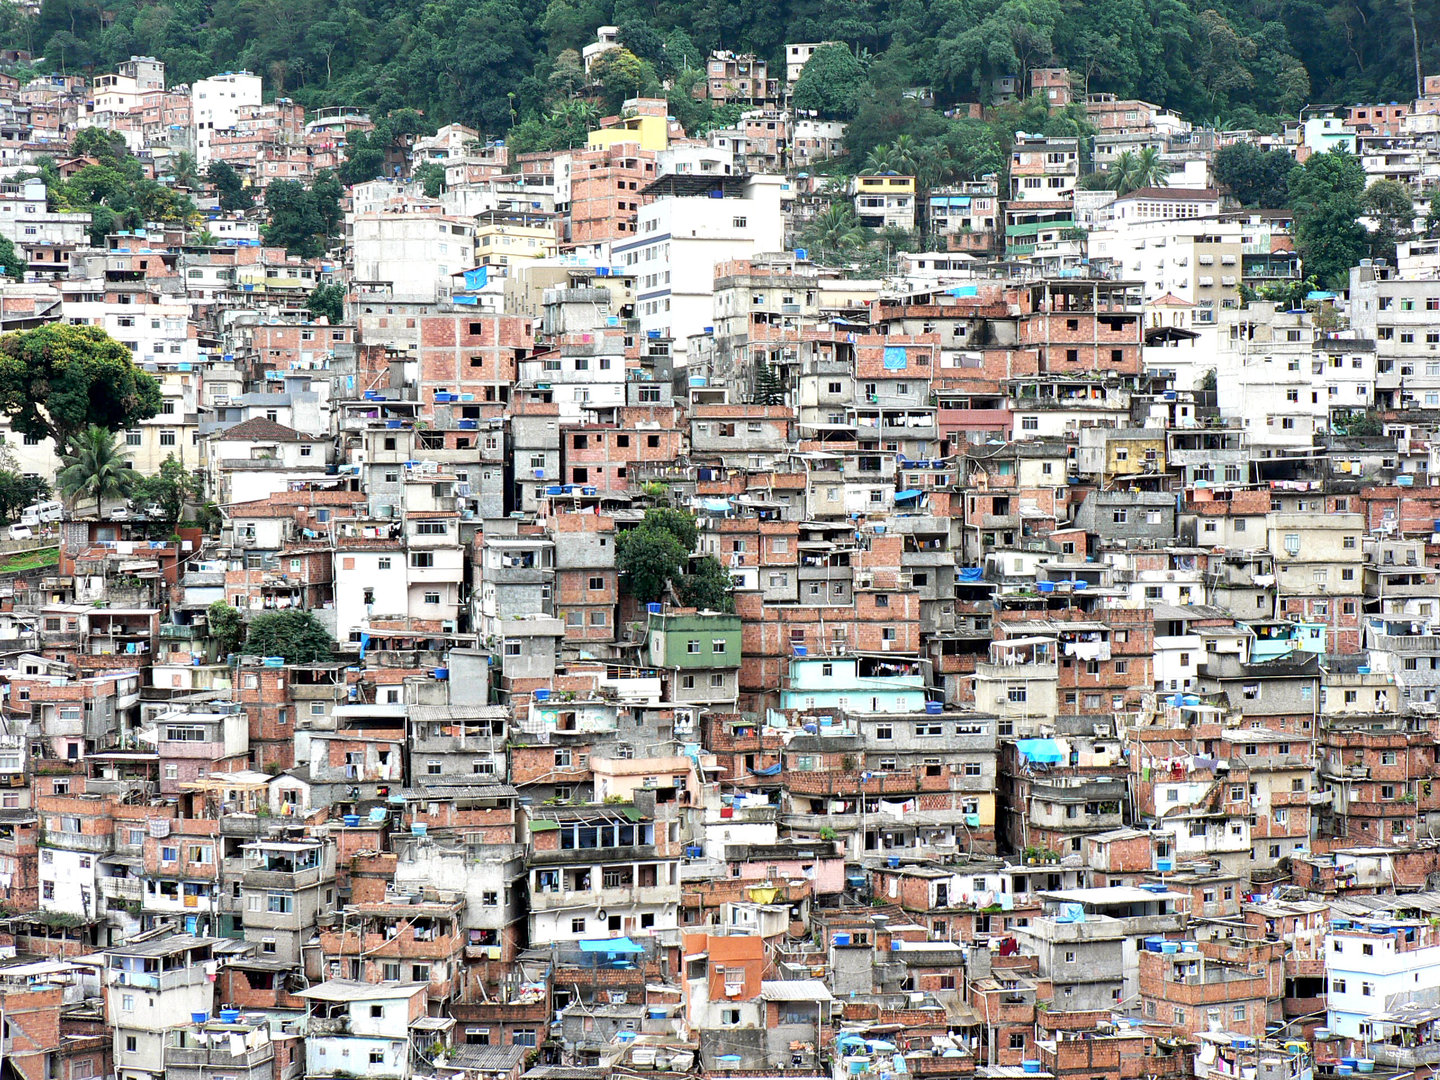 overpopulated slum